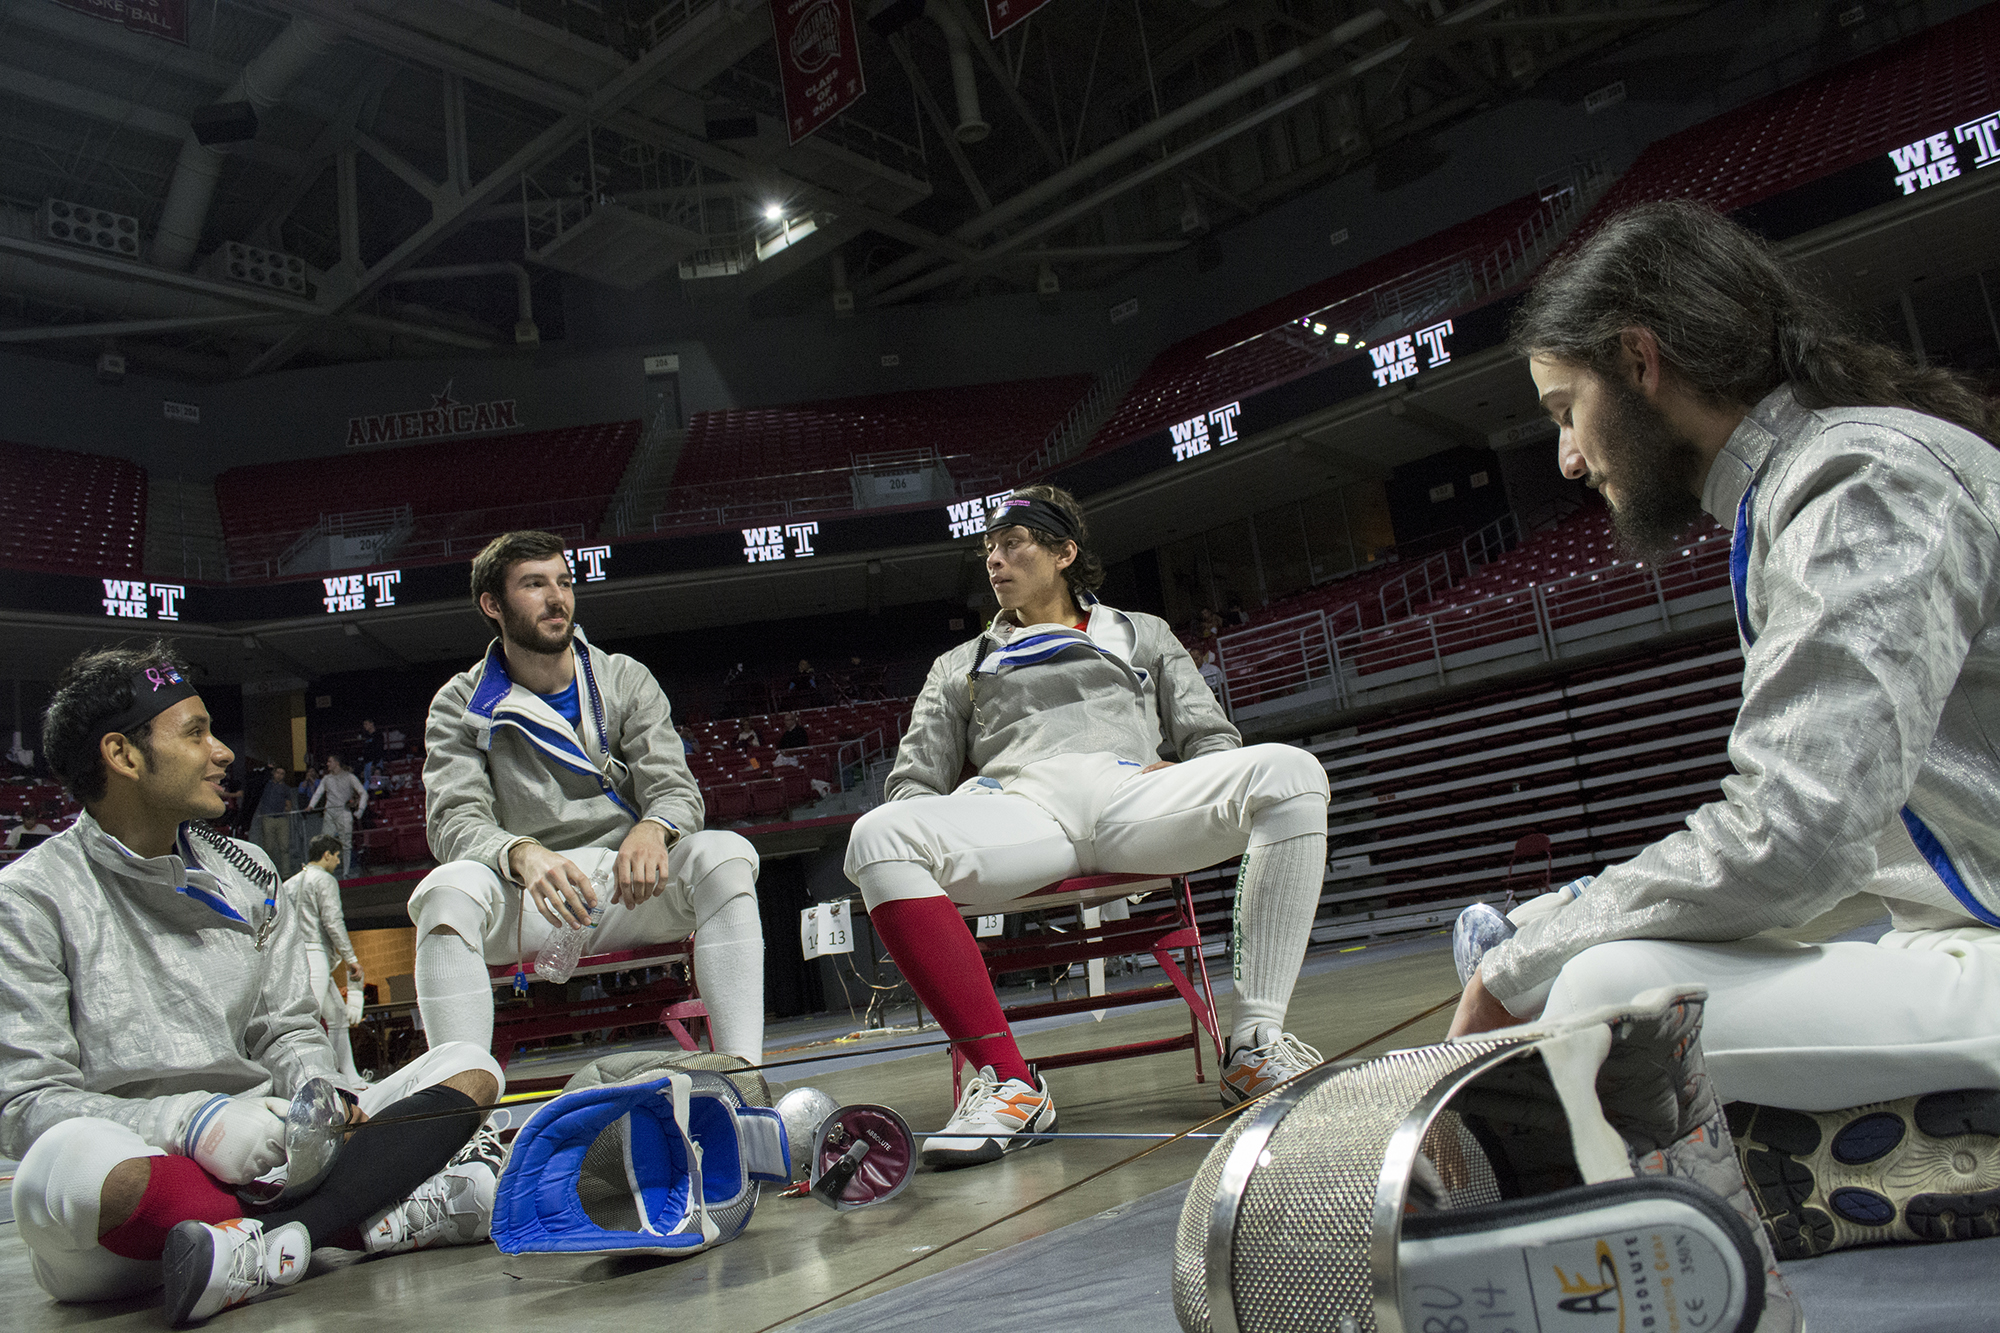 From left, sabre fencers sophomore  Andres Carajaval, senior Alex Muller, sophomore Braulio Trejo, and freshman Alex Babiak rest before the beginning of the direct elimination round of the Men's Sabre division. All four would be eliminated in the Table of 64. CHRISTOPHER CAMERON/THE STATESMAN